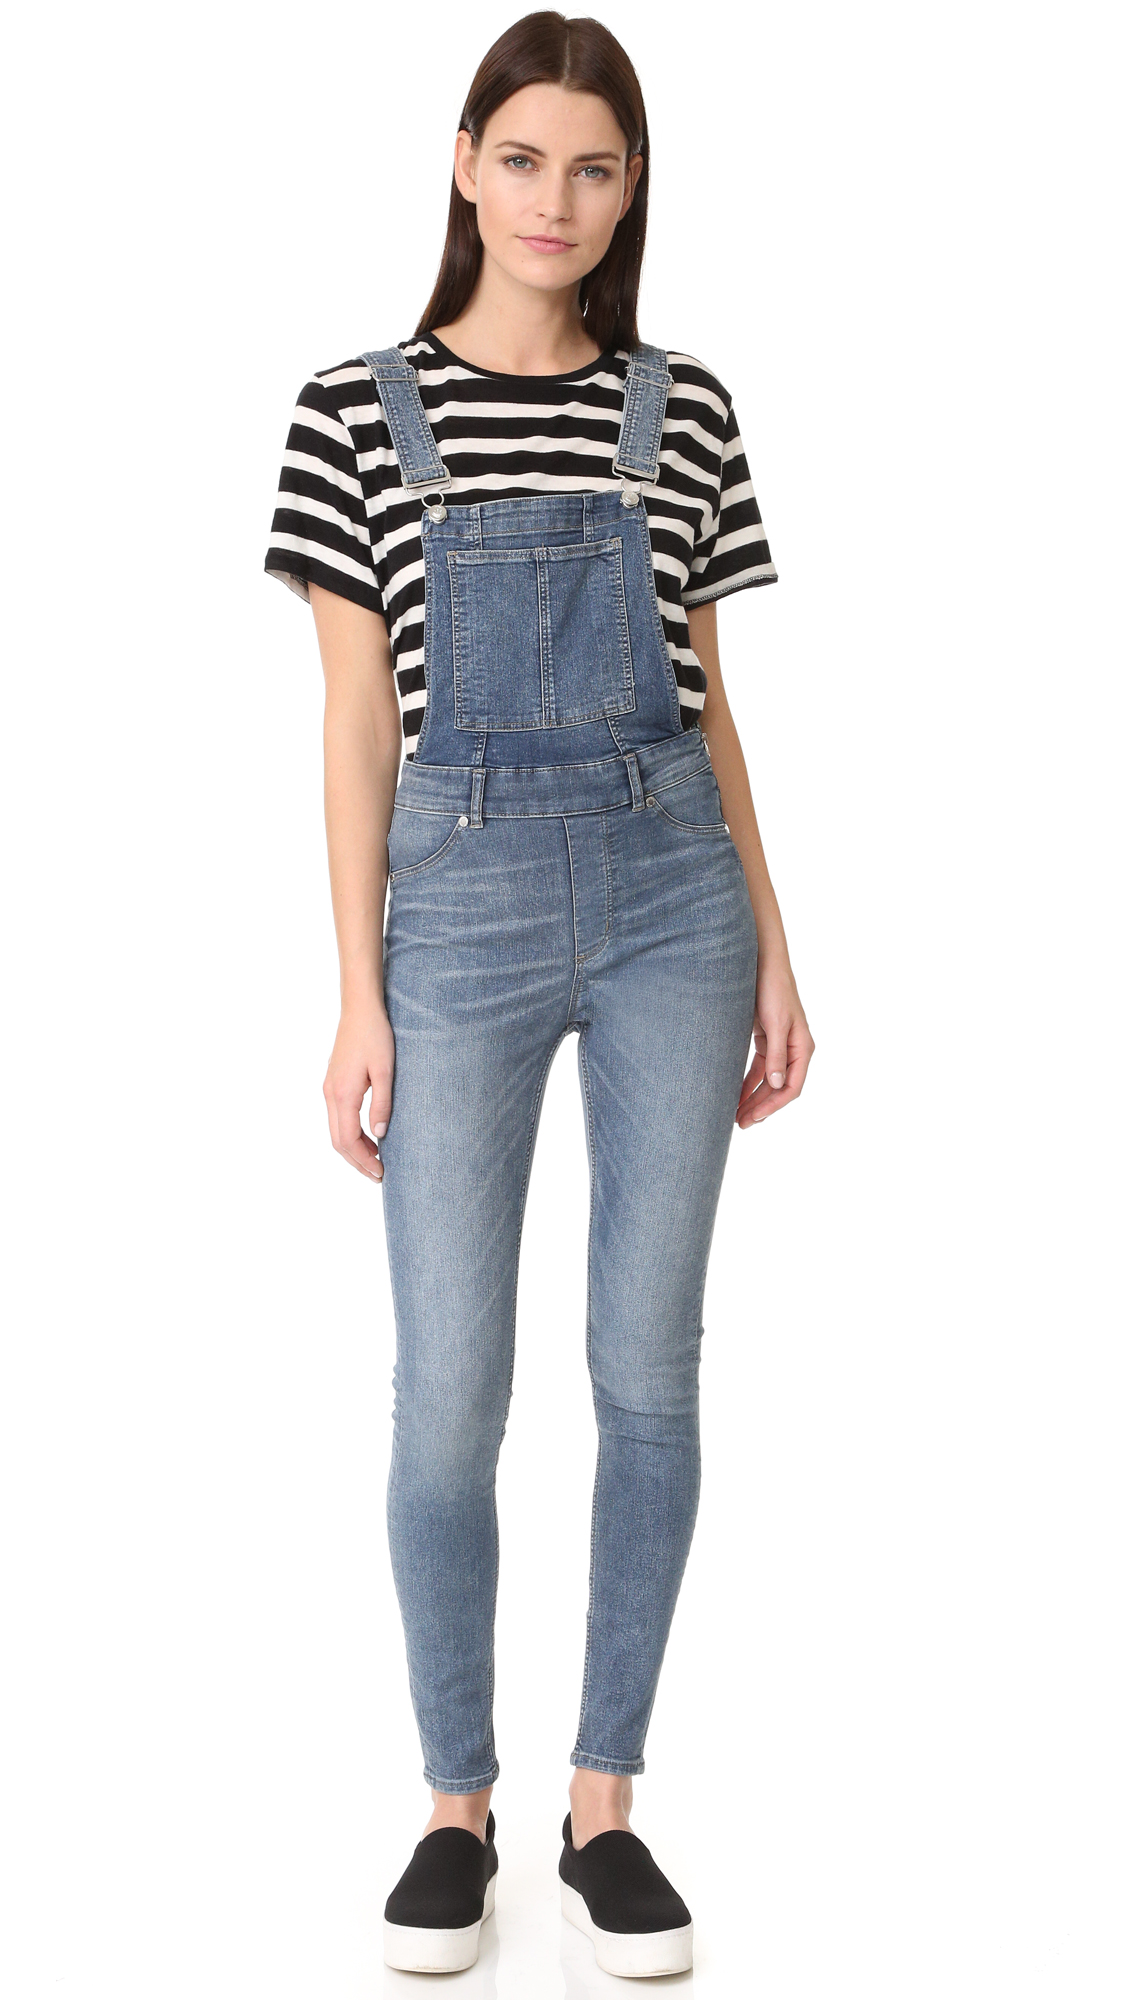 Faded, super stretch Cheap Monday overalls with a slim fit. 2 bib pockets and 2 back pockets. Adjustable straps with buckle closures. Exposed side zip. Fabric: Stretch denim. 79% cotton/19% polyester/2% elastane. Wash cold or dry clean. Imported, Pakistan.